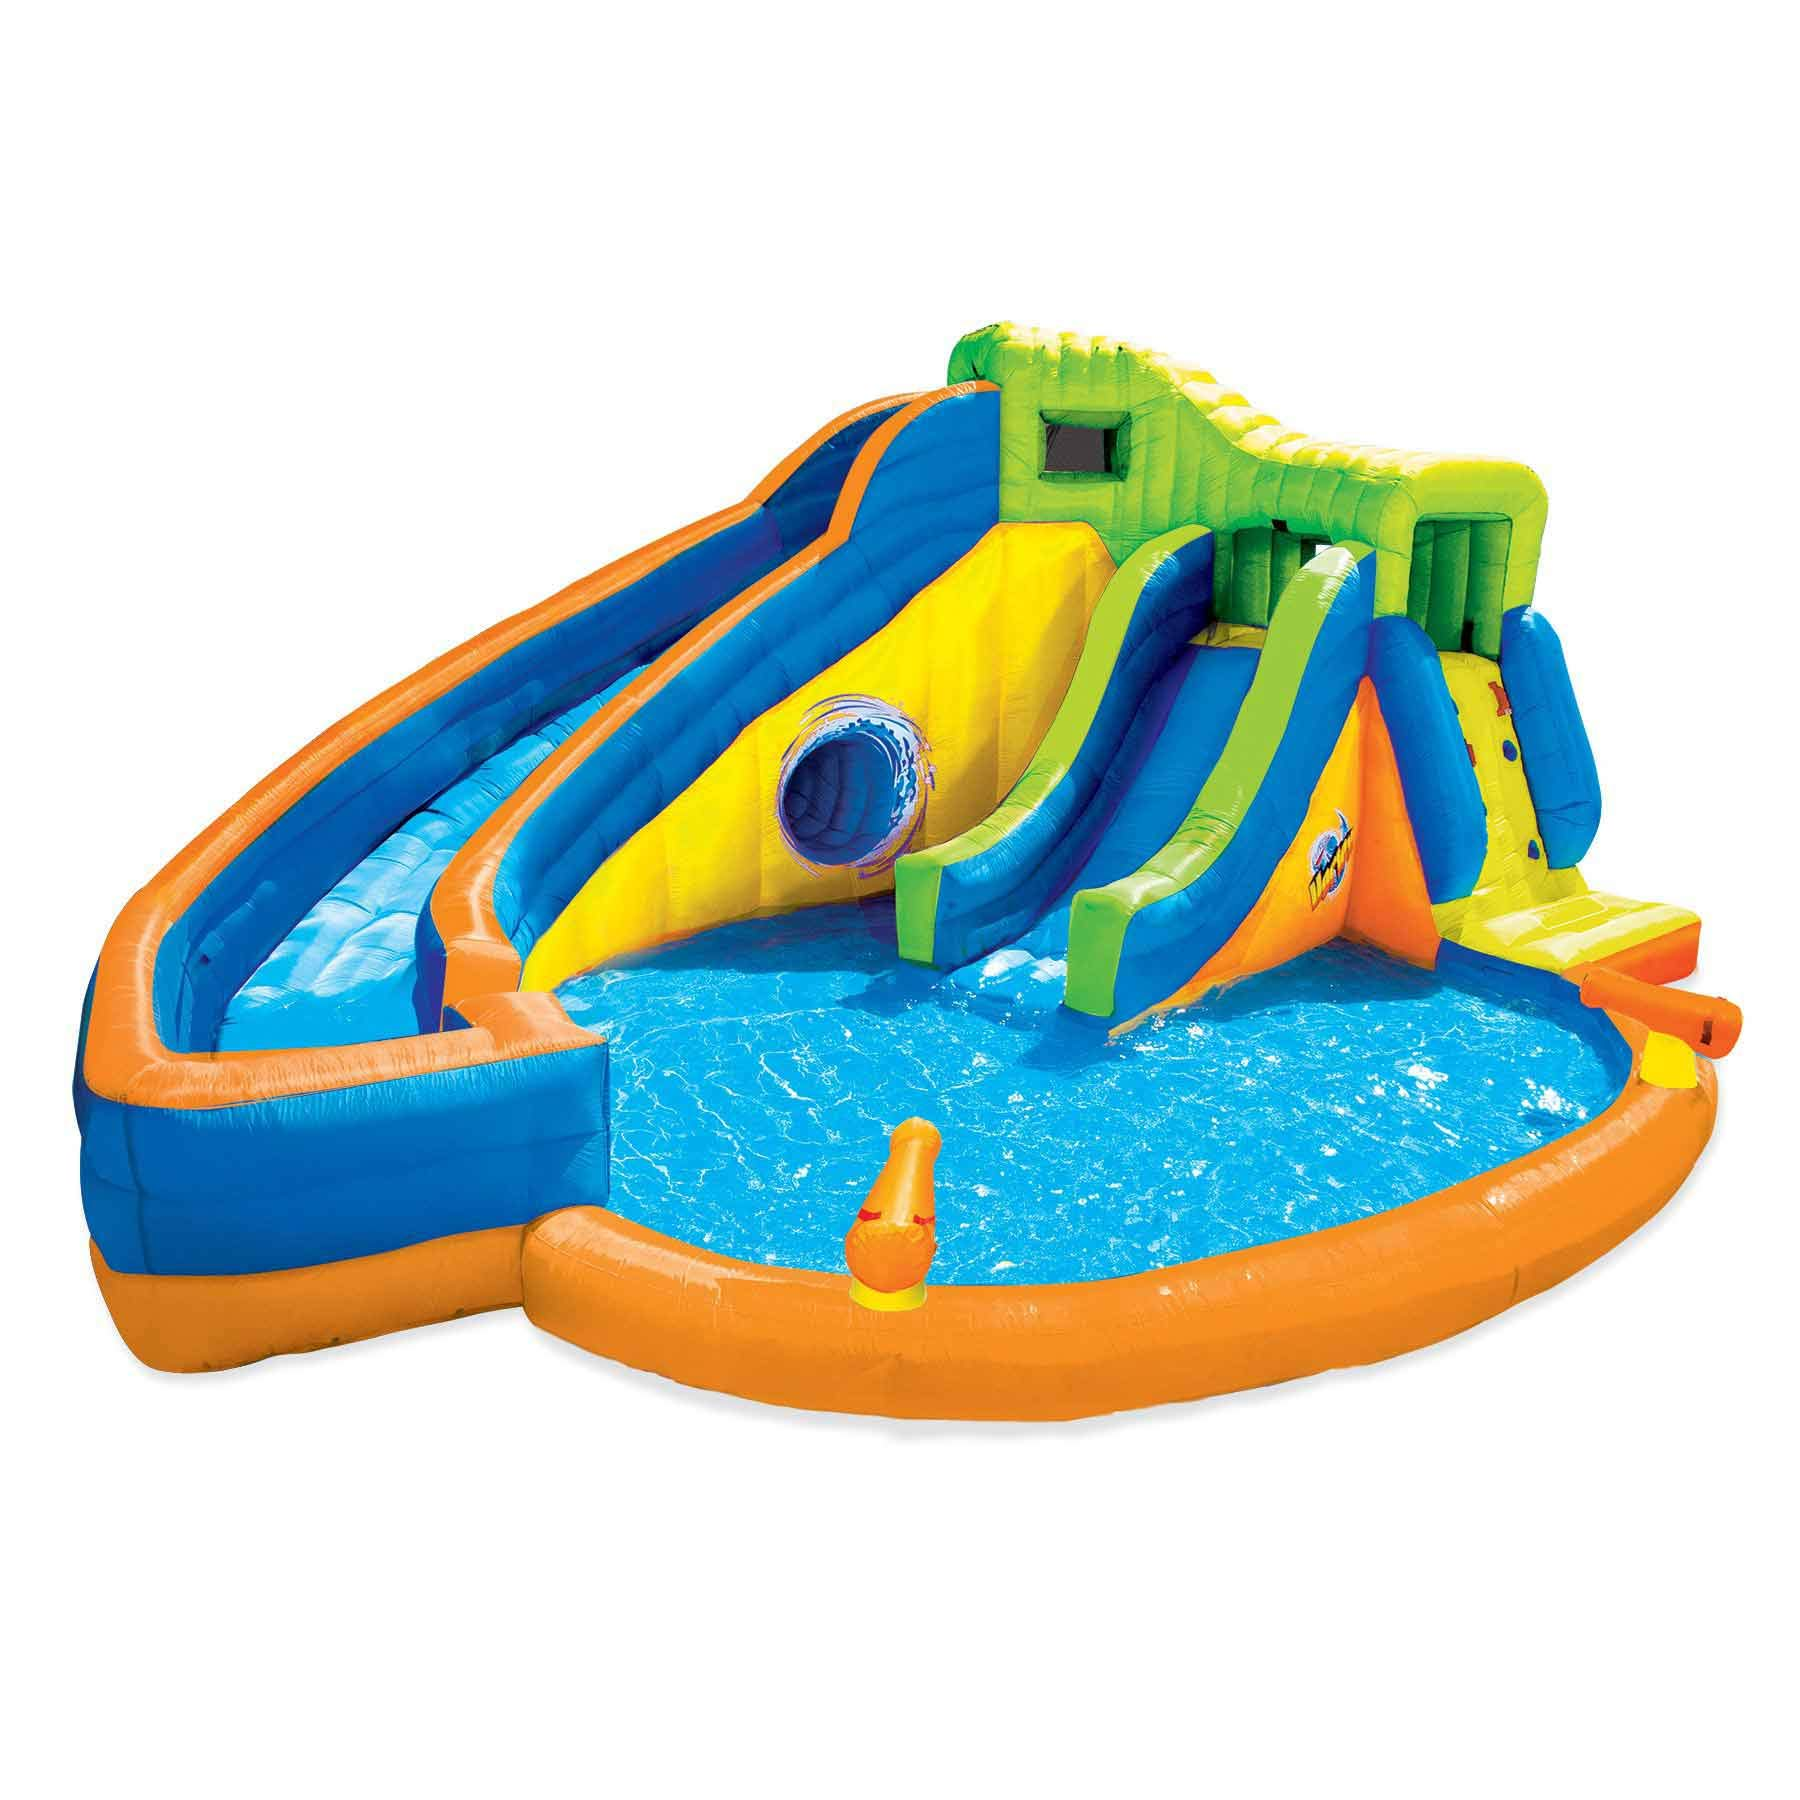 BANZAI Pipeline Twist Kids Inflatable Outdoor Water Pool Aqua Park and Slides by BANZAI (Image #1)